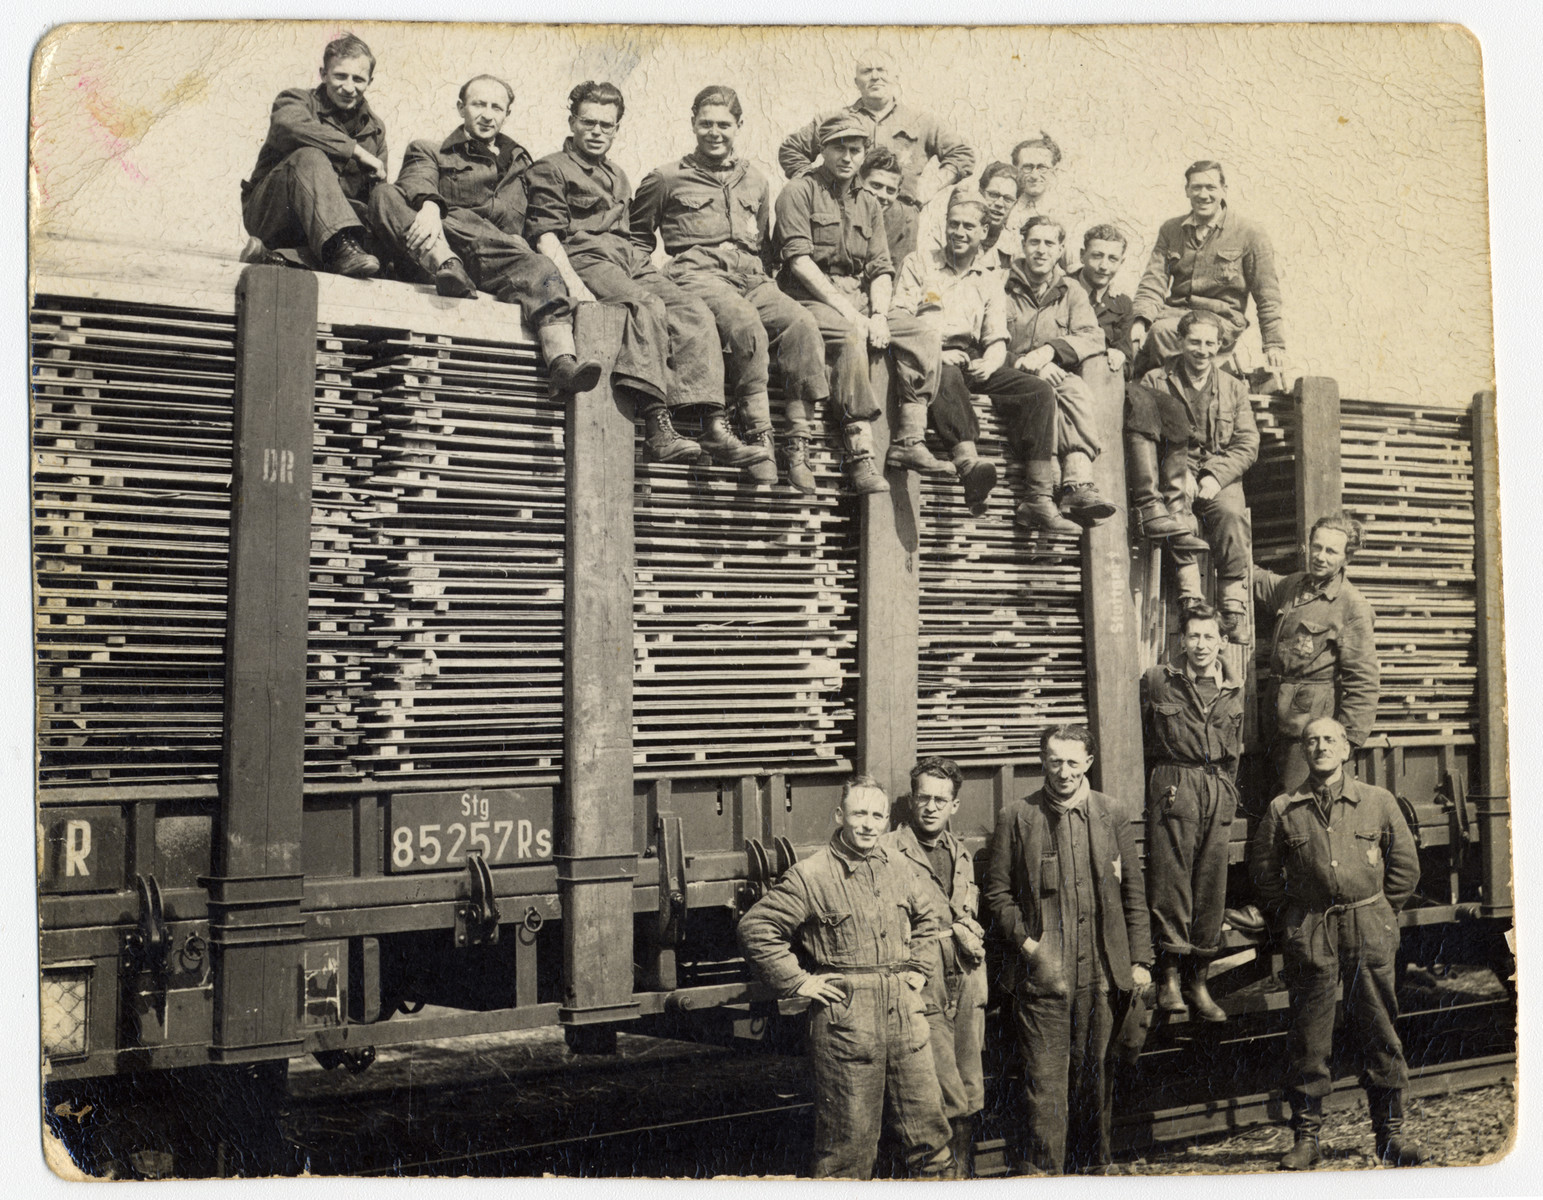 Jewish internees pose on top and next to a railcar loaded with planks of lumber in Westerbork.   Ignatz Kempler is standing at the base of train (second from right).